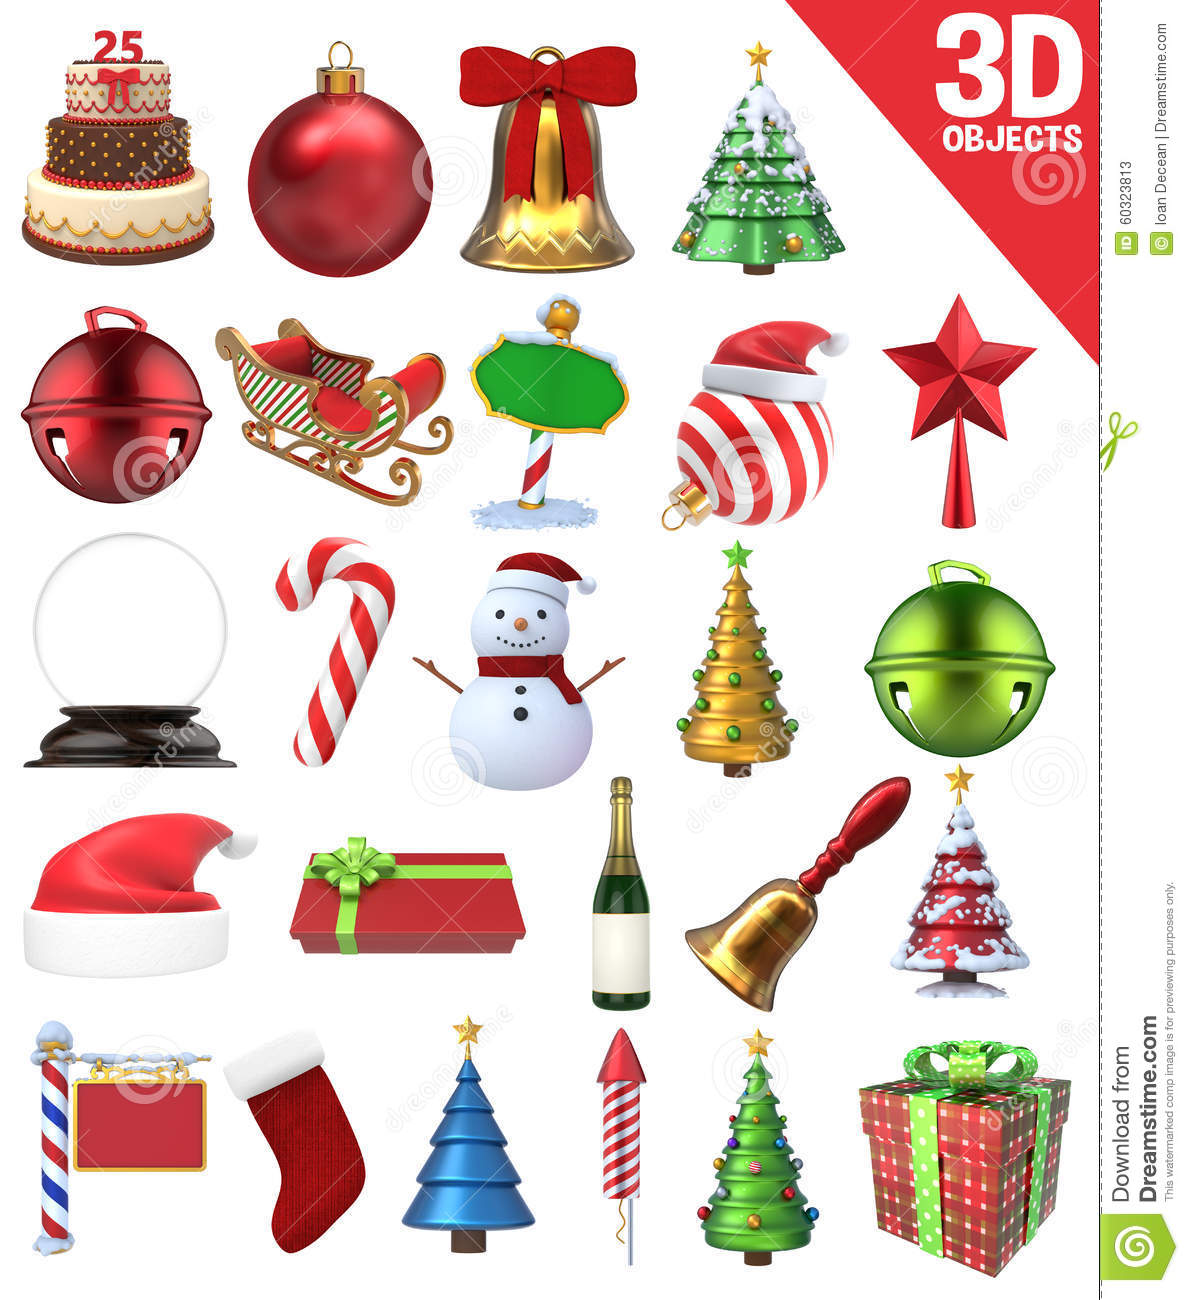 Christmas 3D Objects Set Stock Photo - Image: 60323813